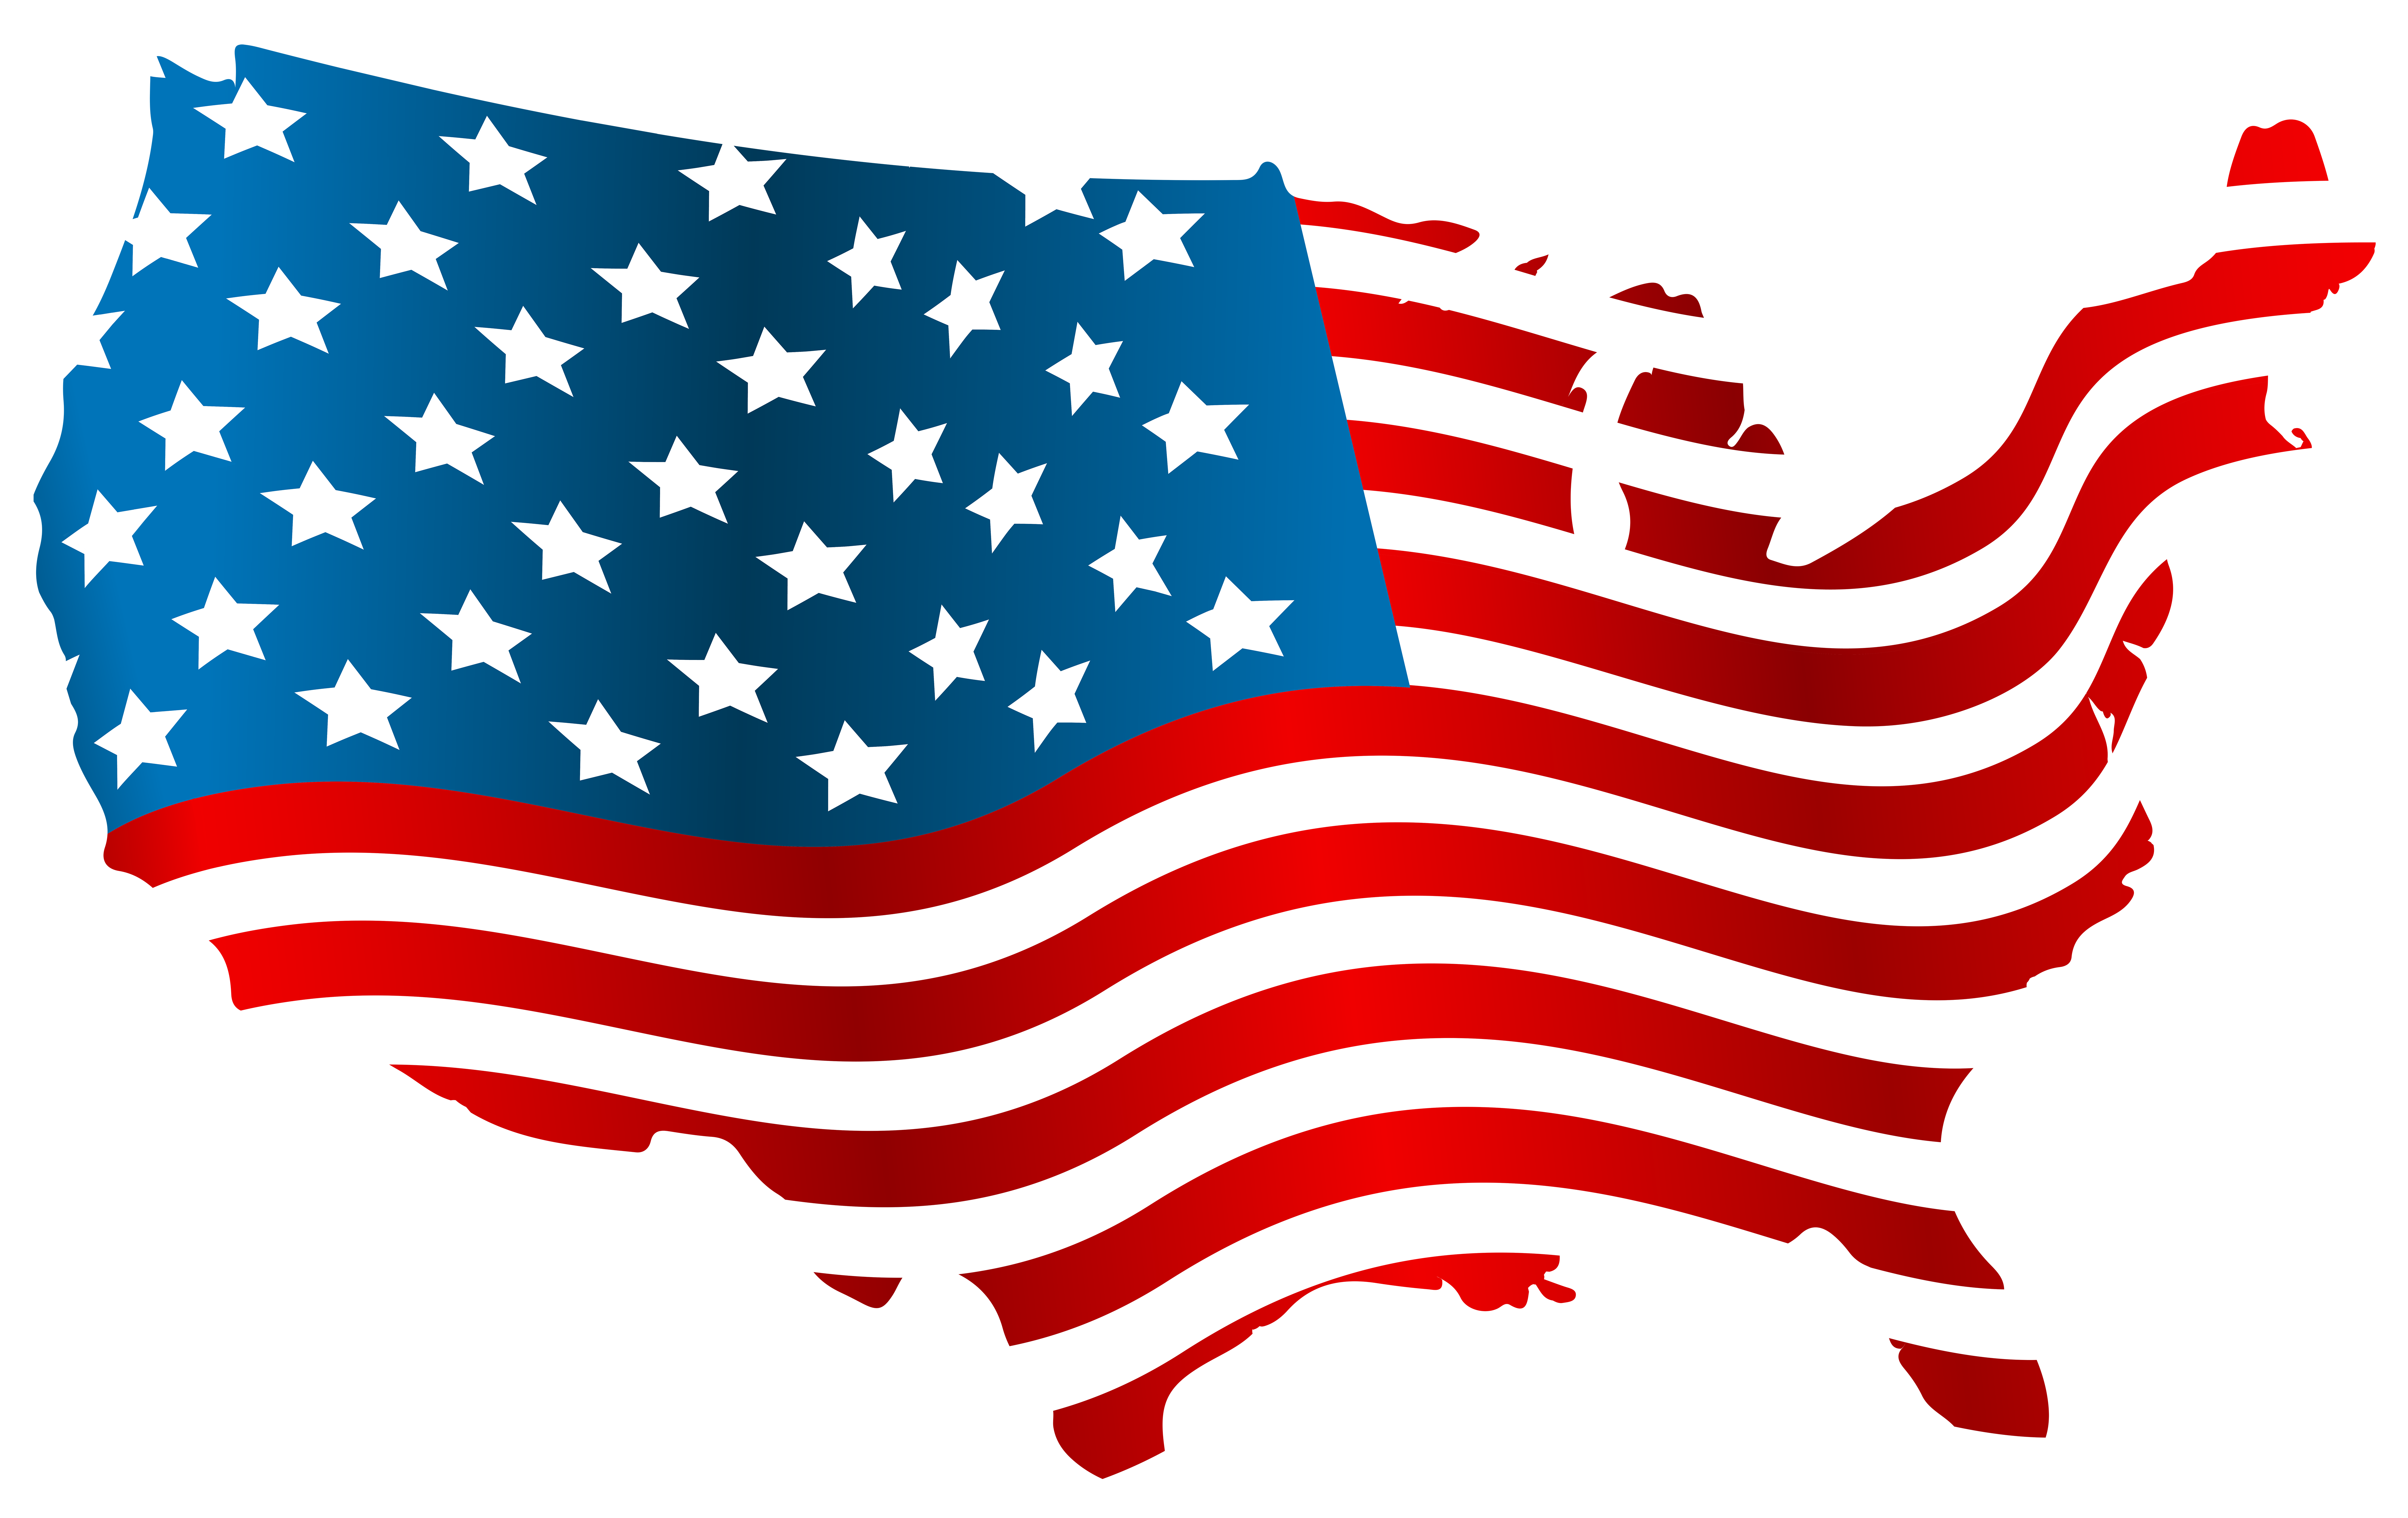 united states clipart flag